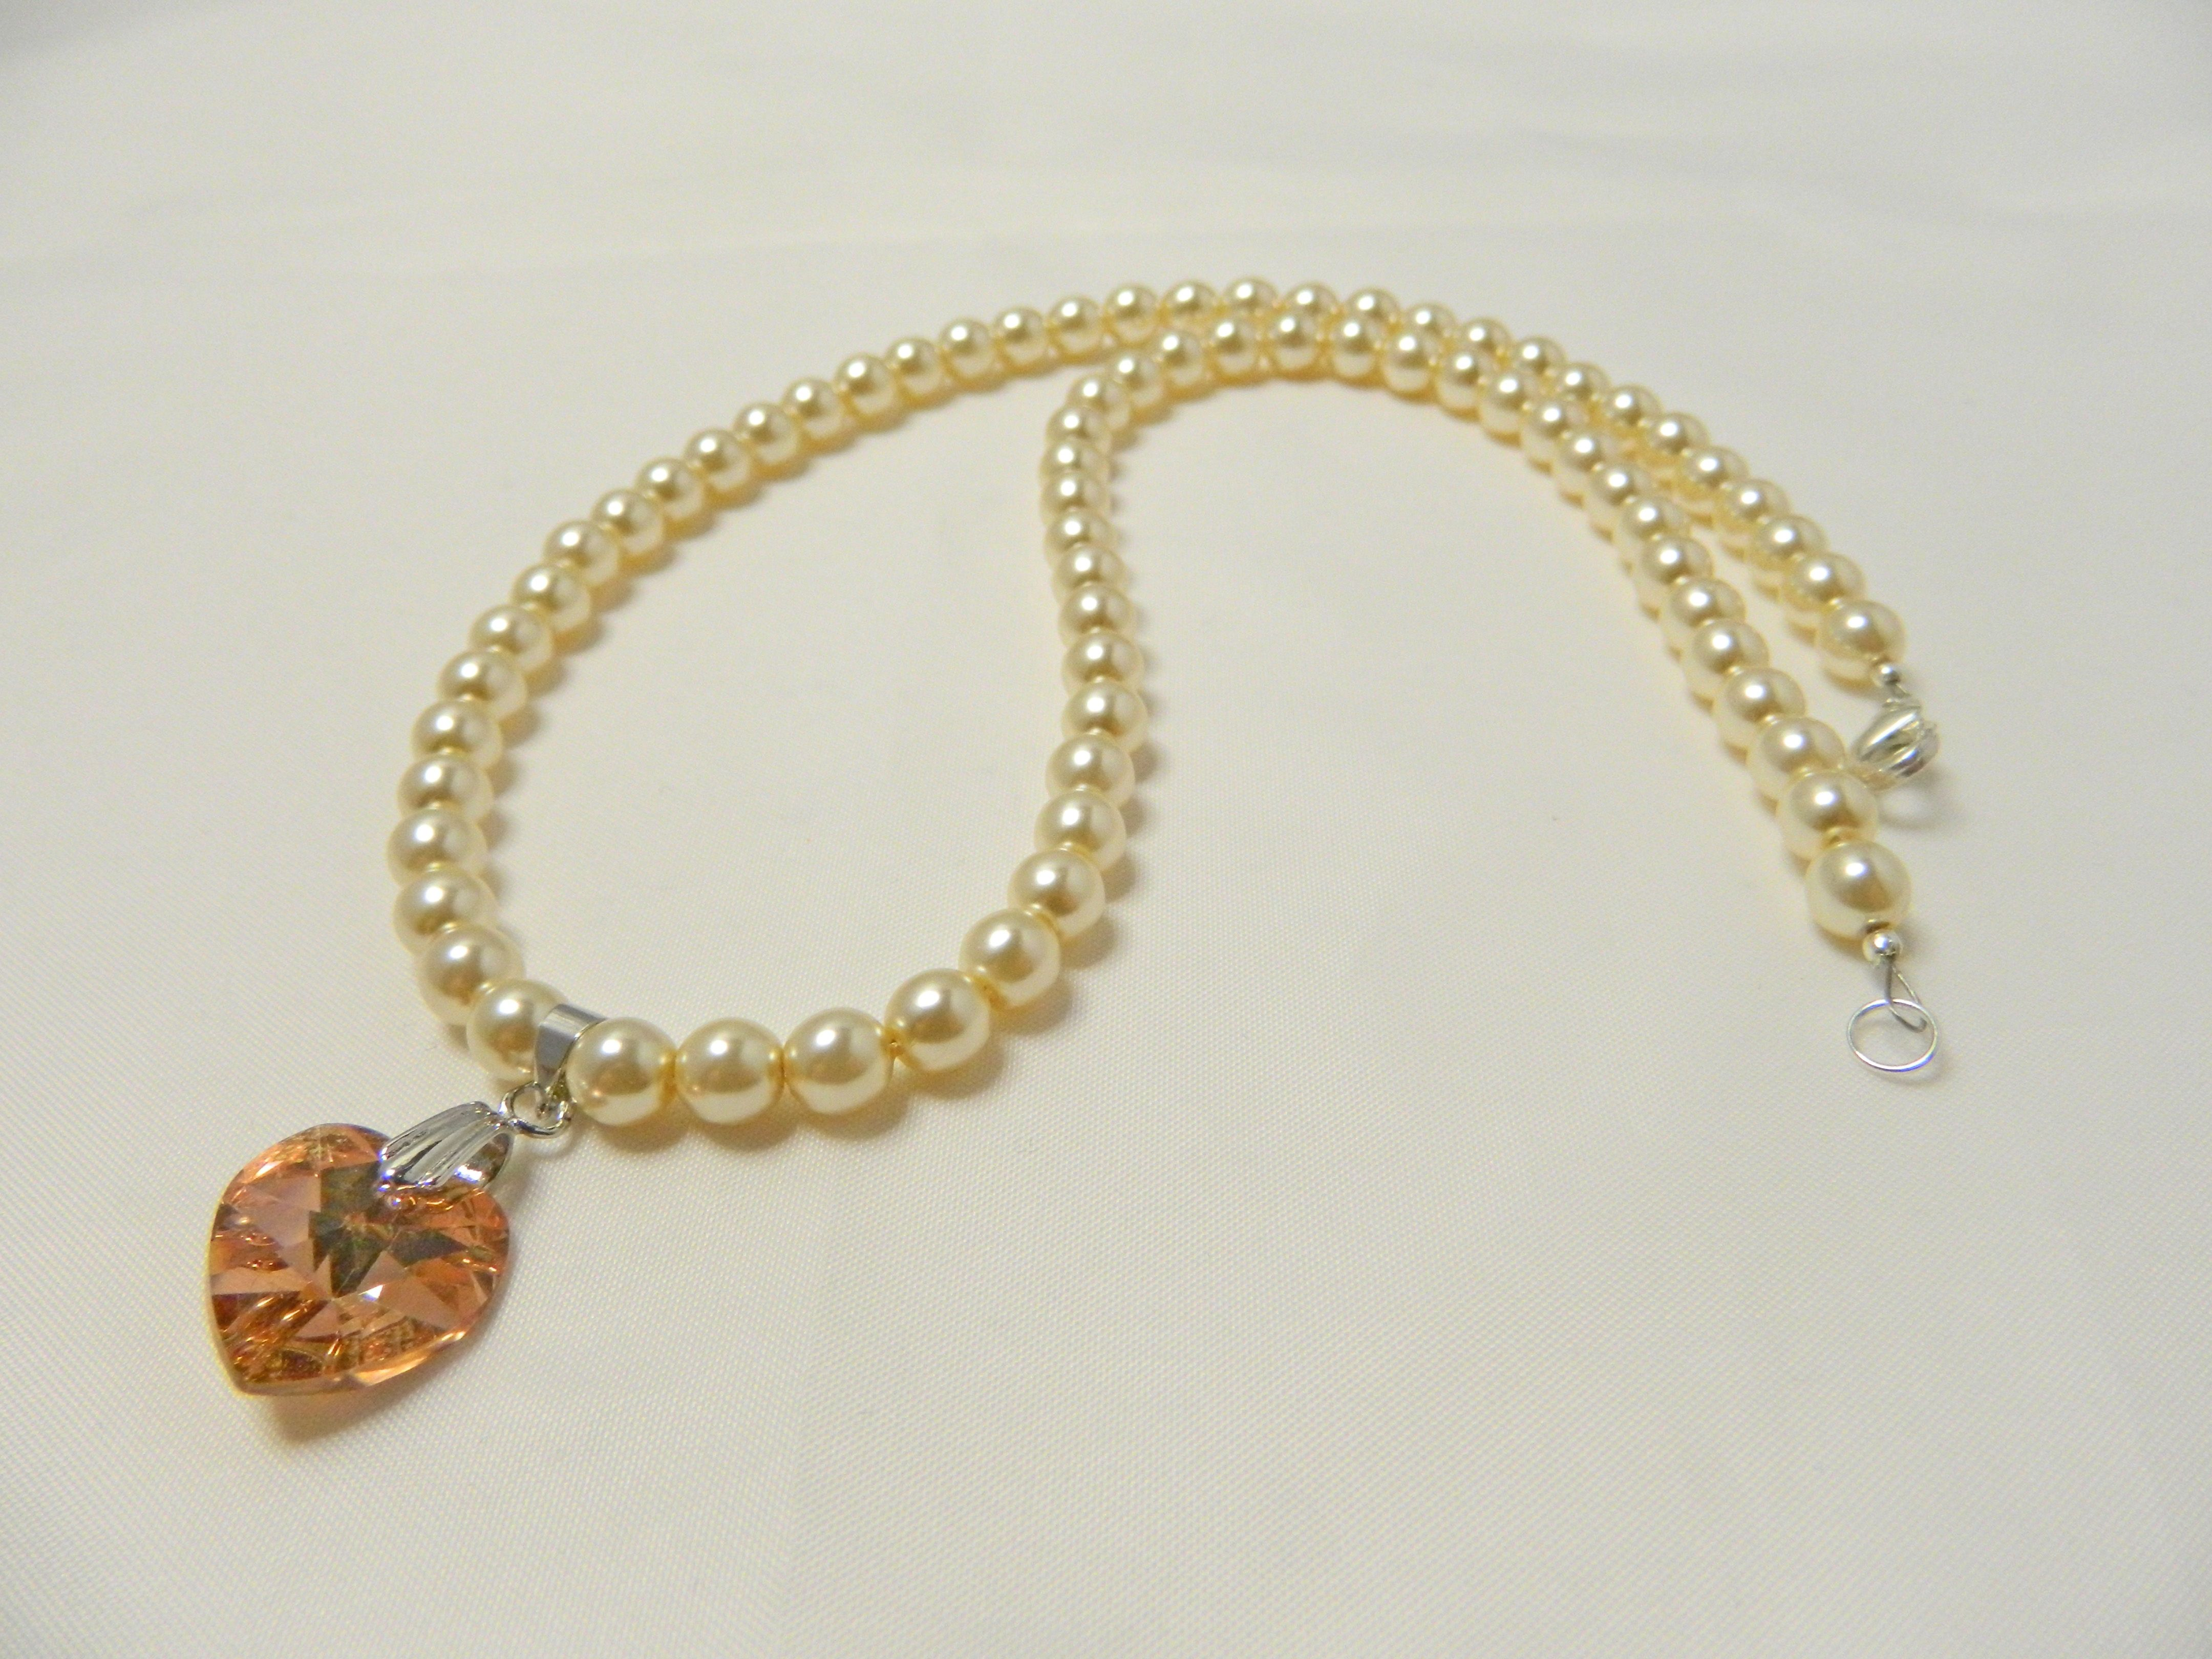 6mm Preciosa Czech Glass Ivory pearls and 14mm Swarovski Golden Shadow Heart Crystal pendant necklace with trigger clasp.  Necklace length 18 inches.  Price £18